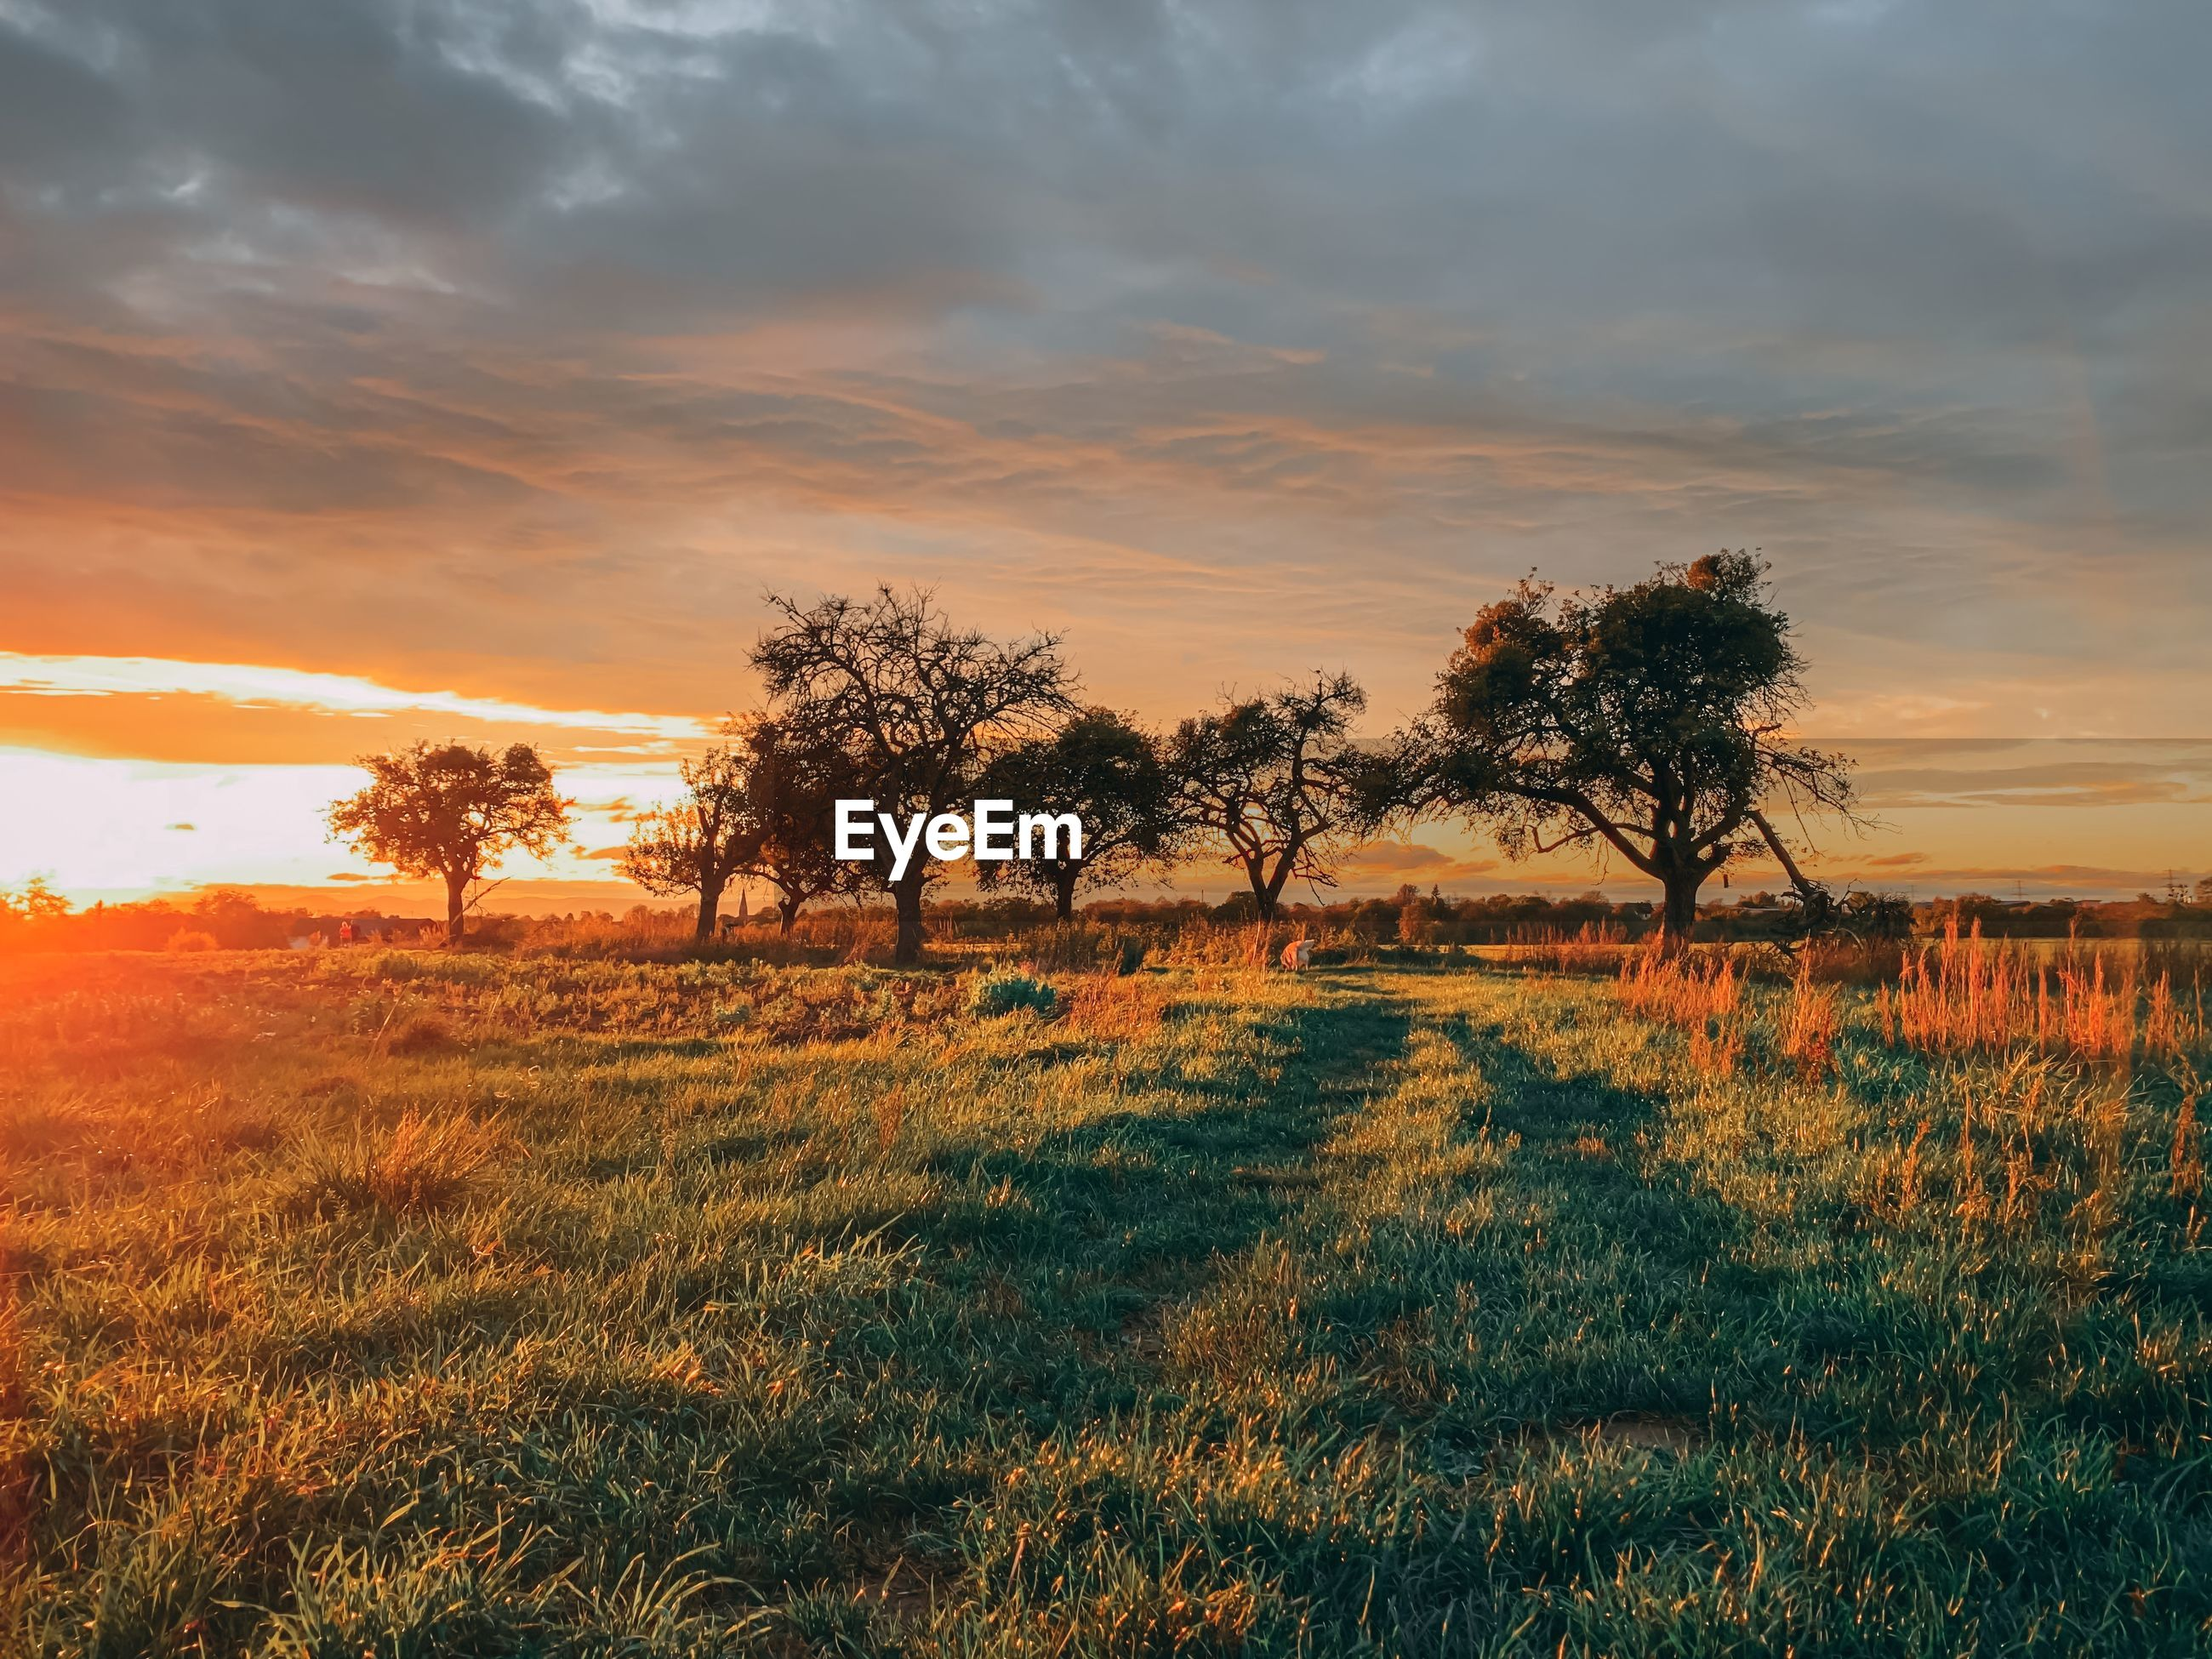 Trees on field against sky during sunset